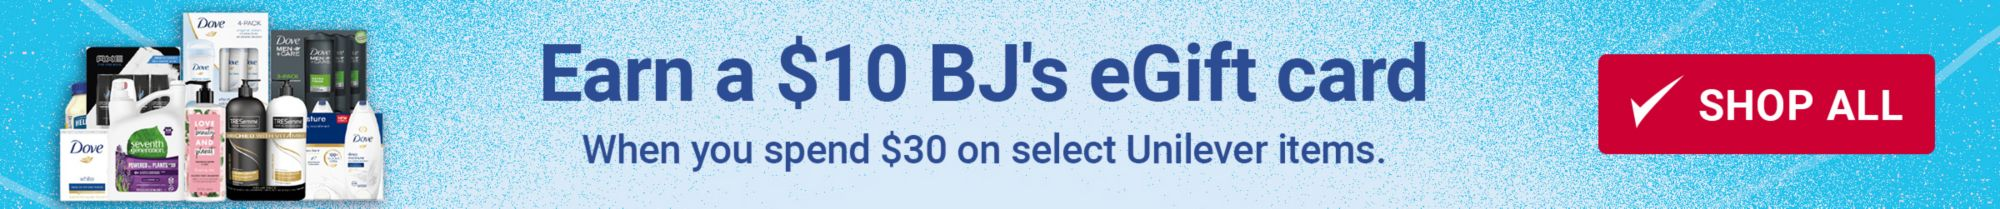 Earn a 10 dollar BJ's E-Gift card when you spend 30 dollars on select Unilever items. Shop All